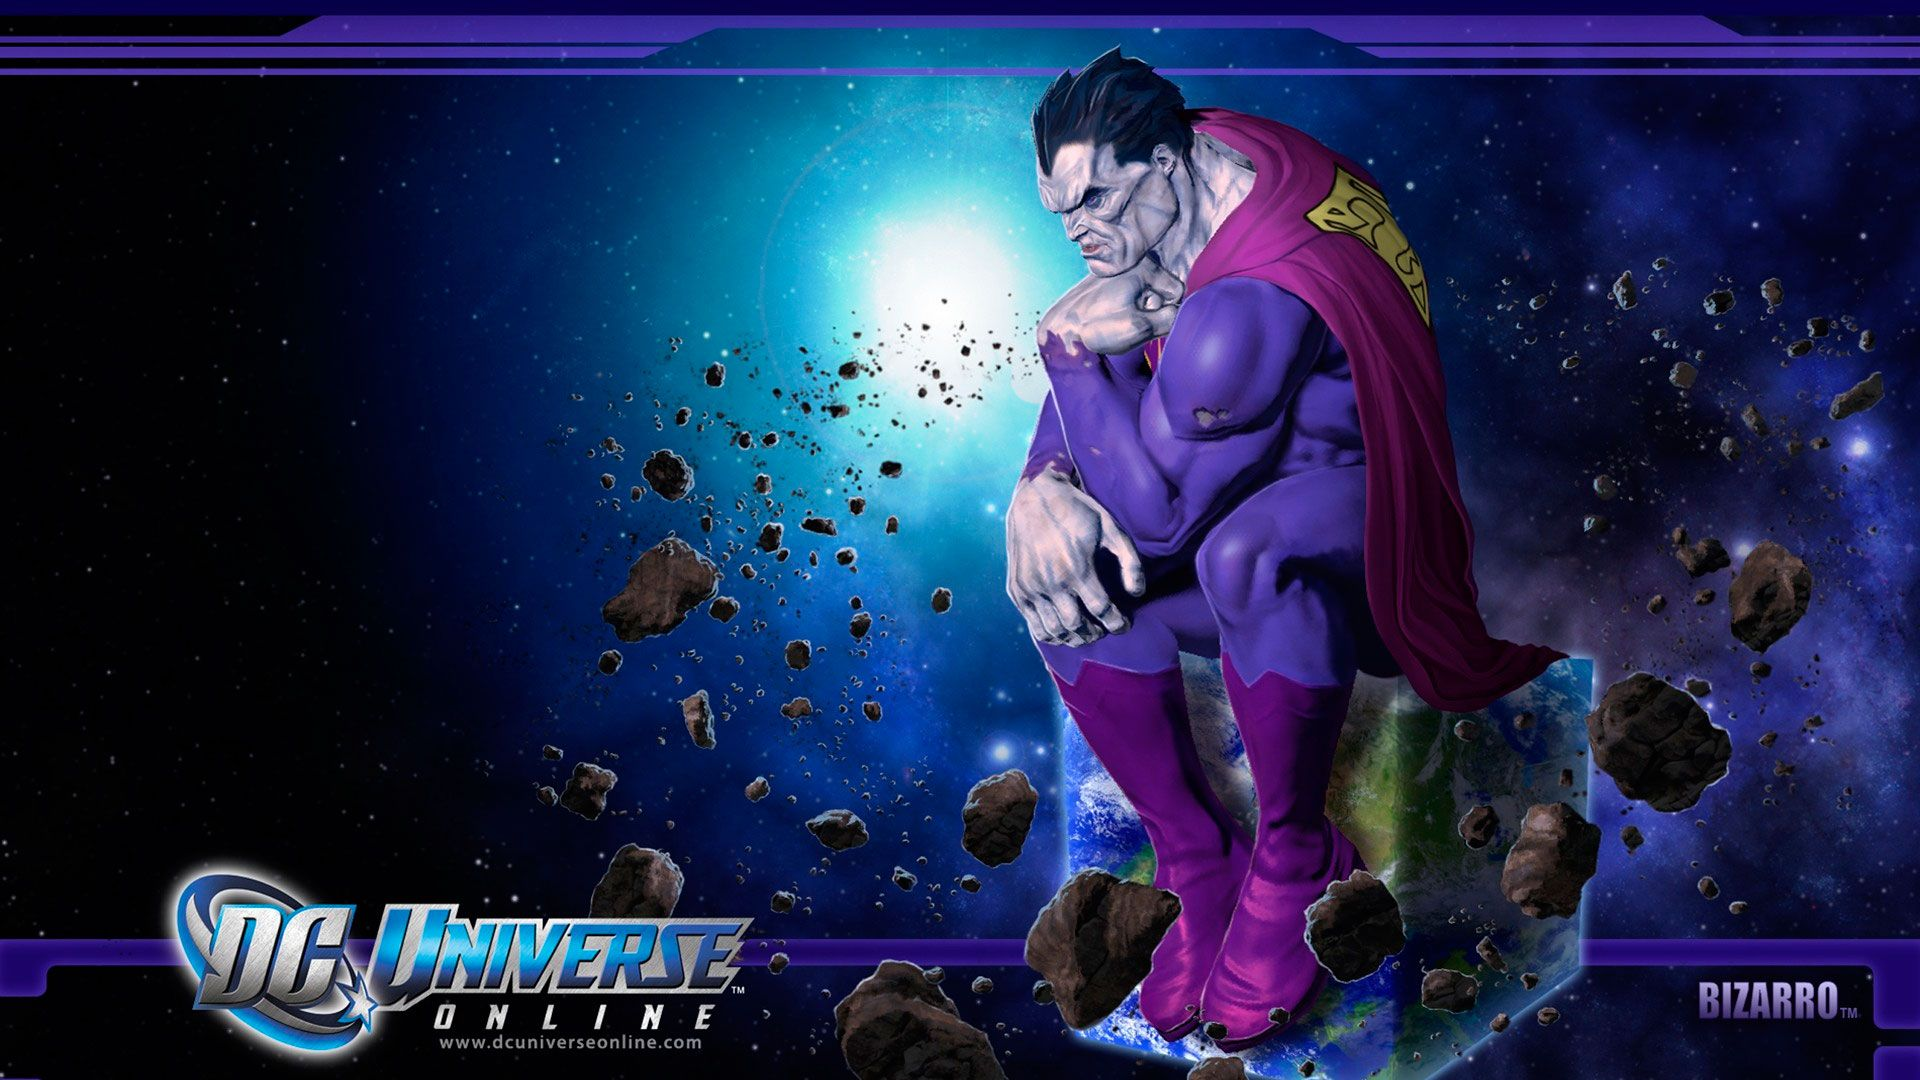 Dc universe online background full hdg 19201080 comic art dc universe online background full hdg 1920 voltagebd Images